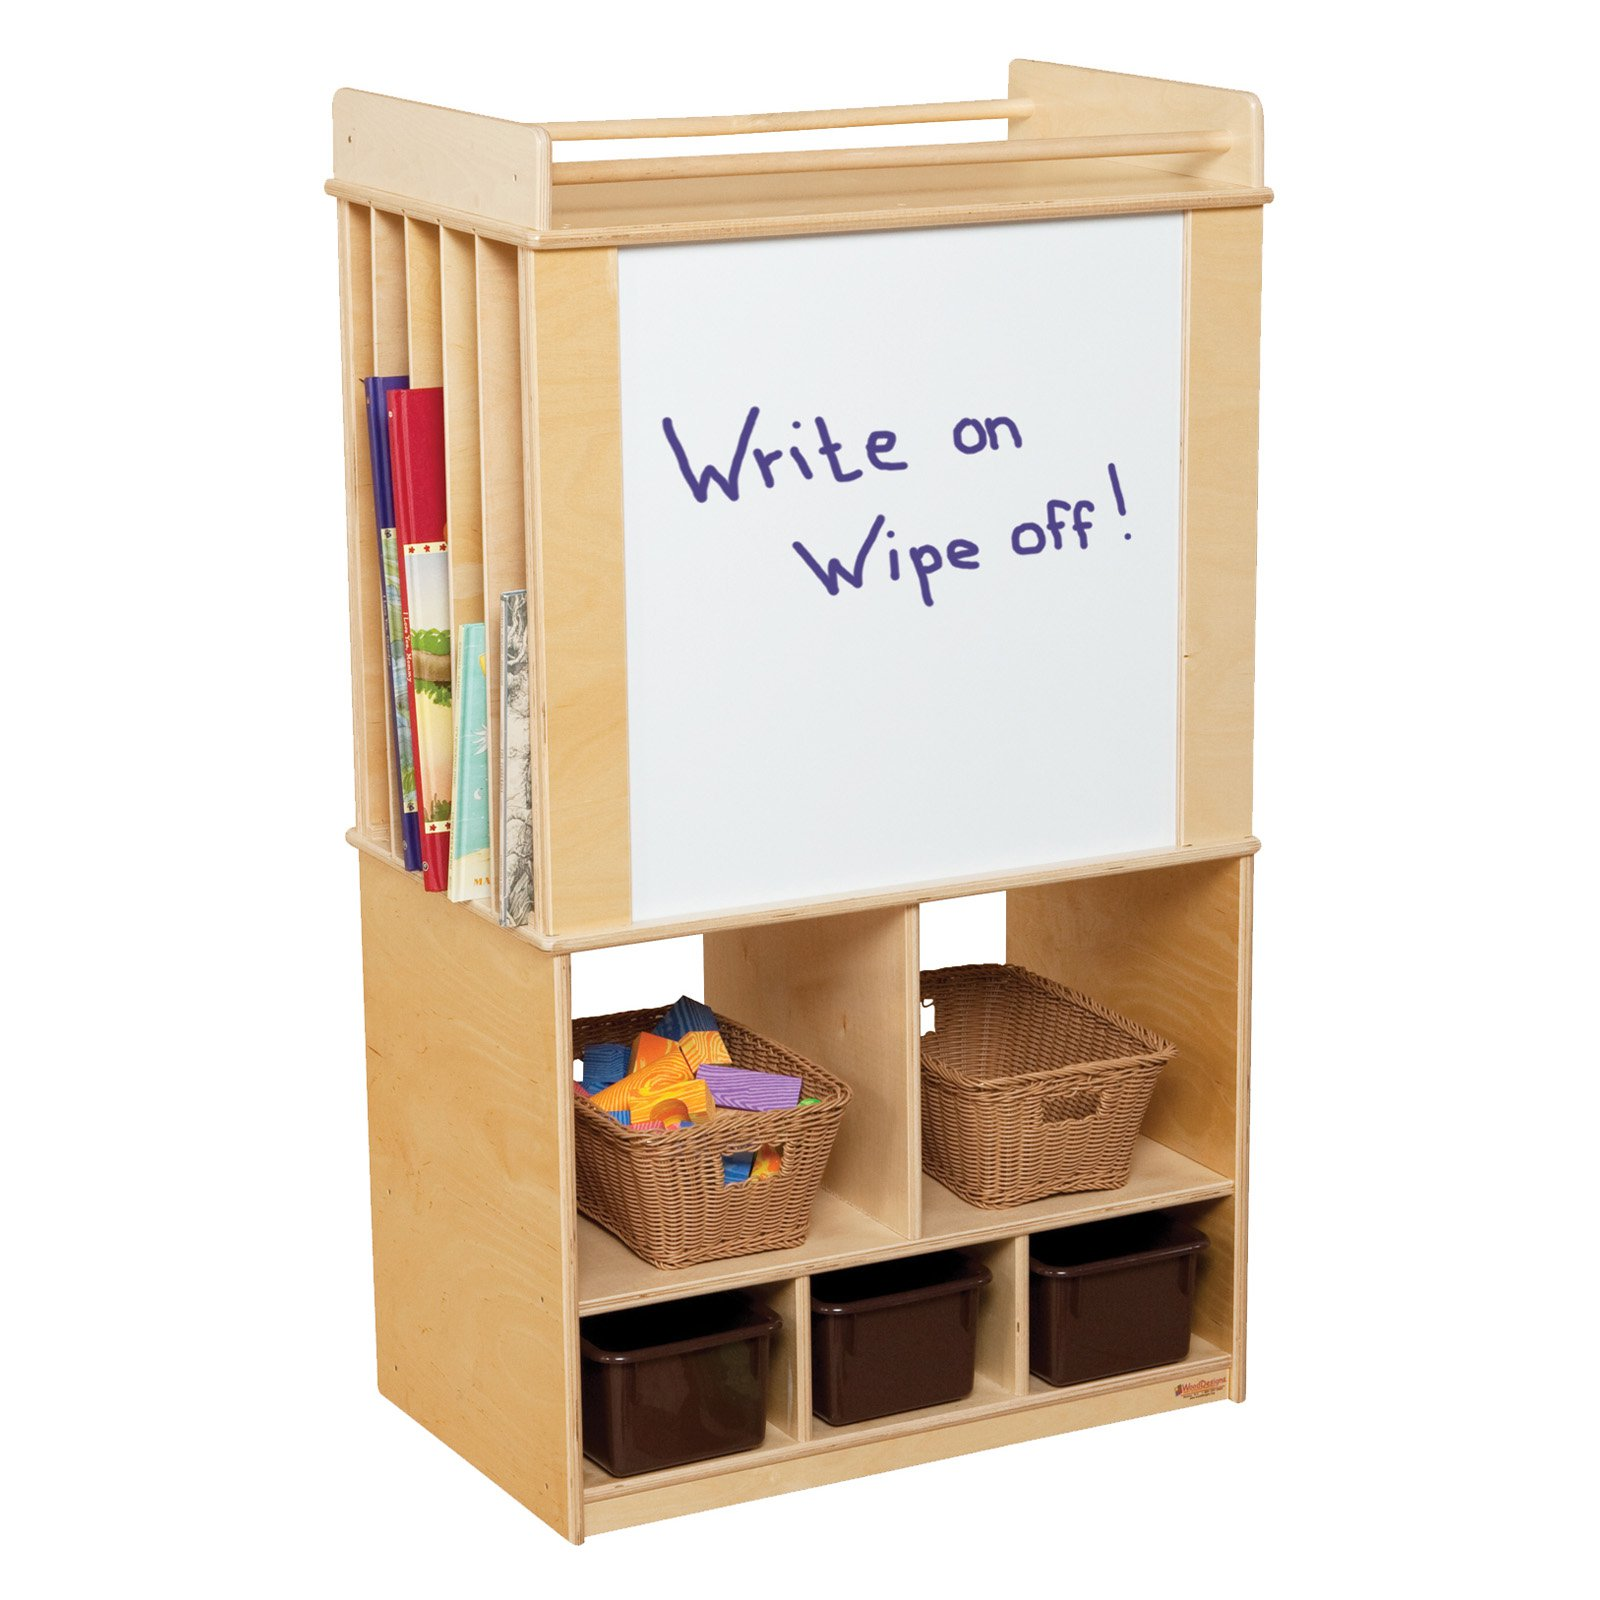 Wood Designs Store It All Teaching Center with 3 Trays